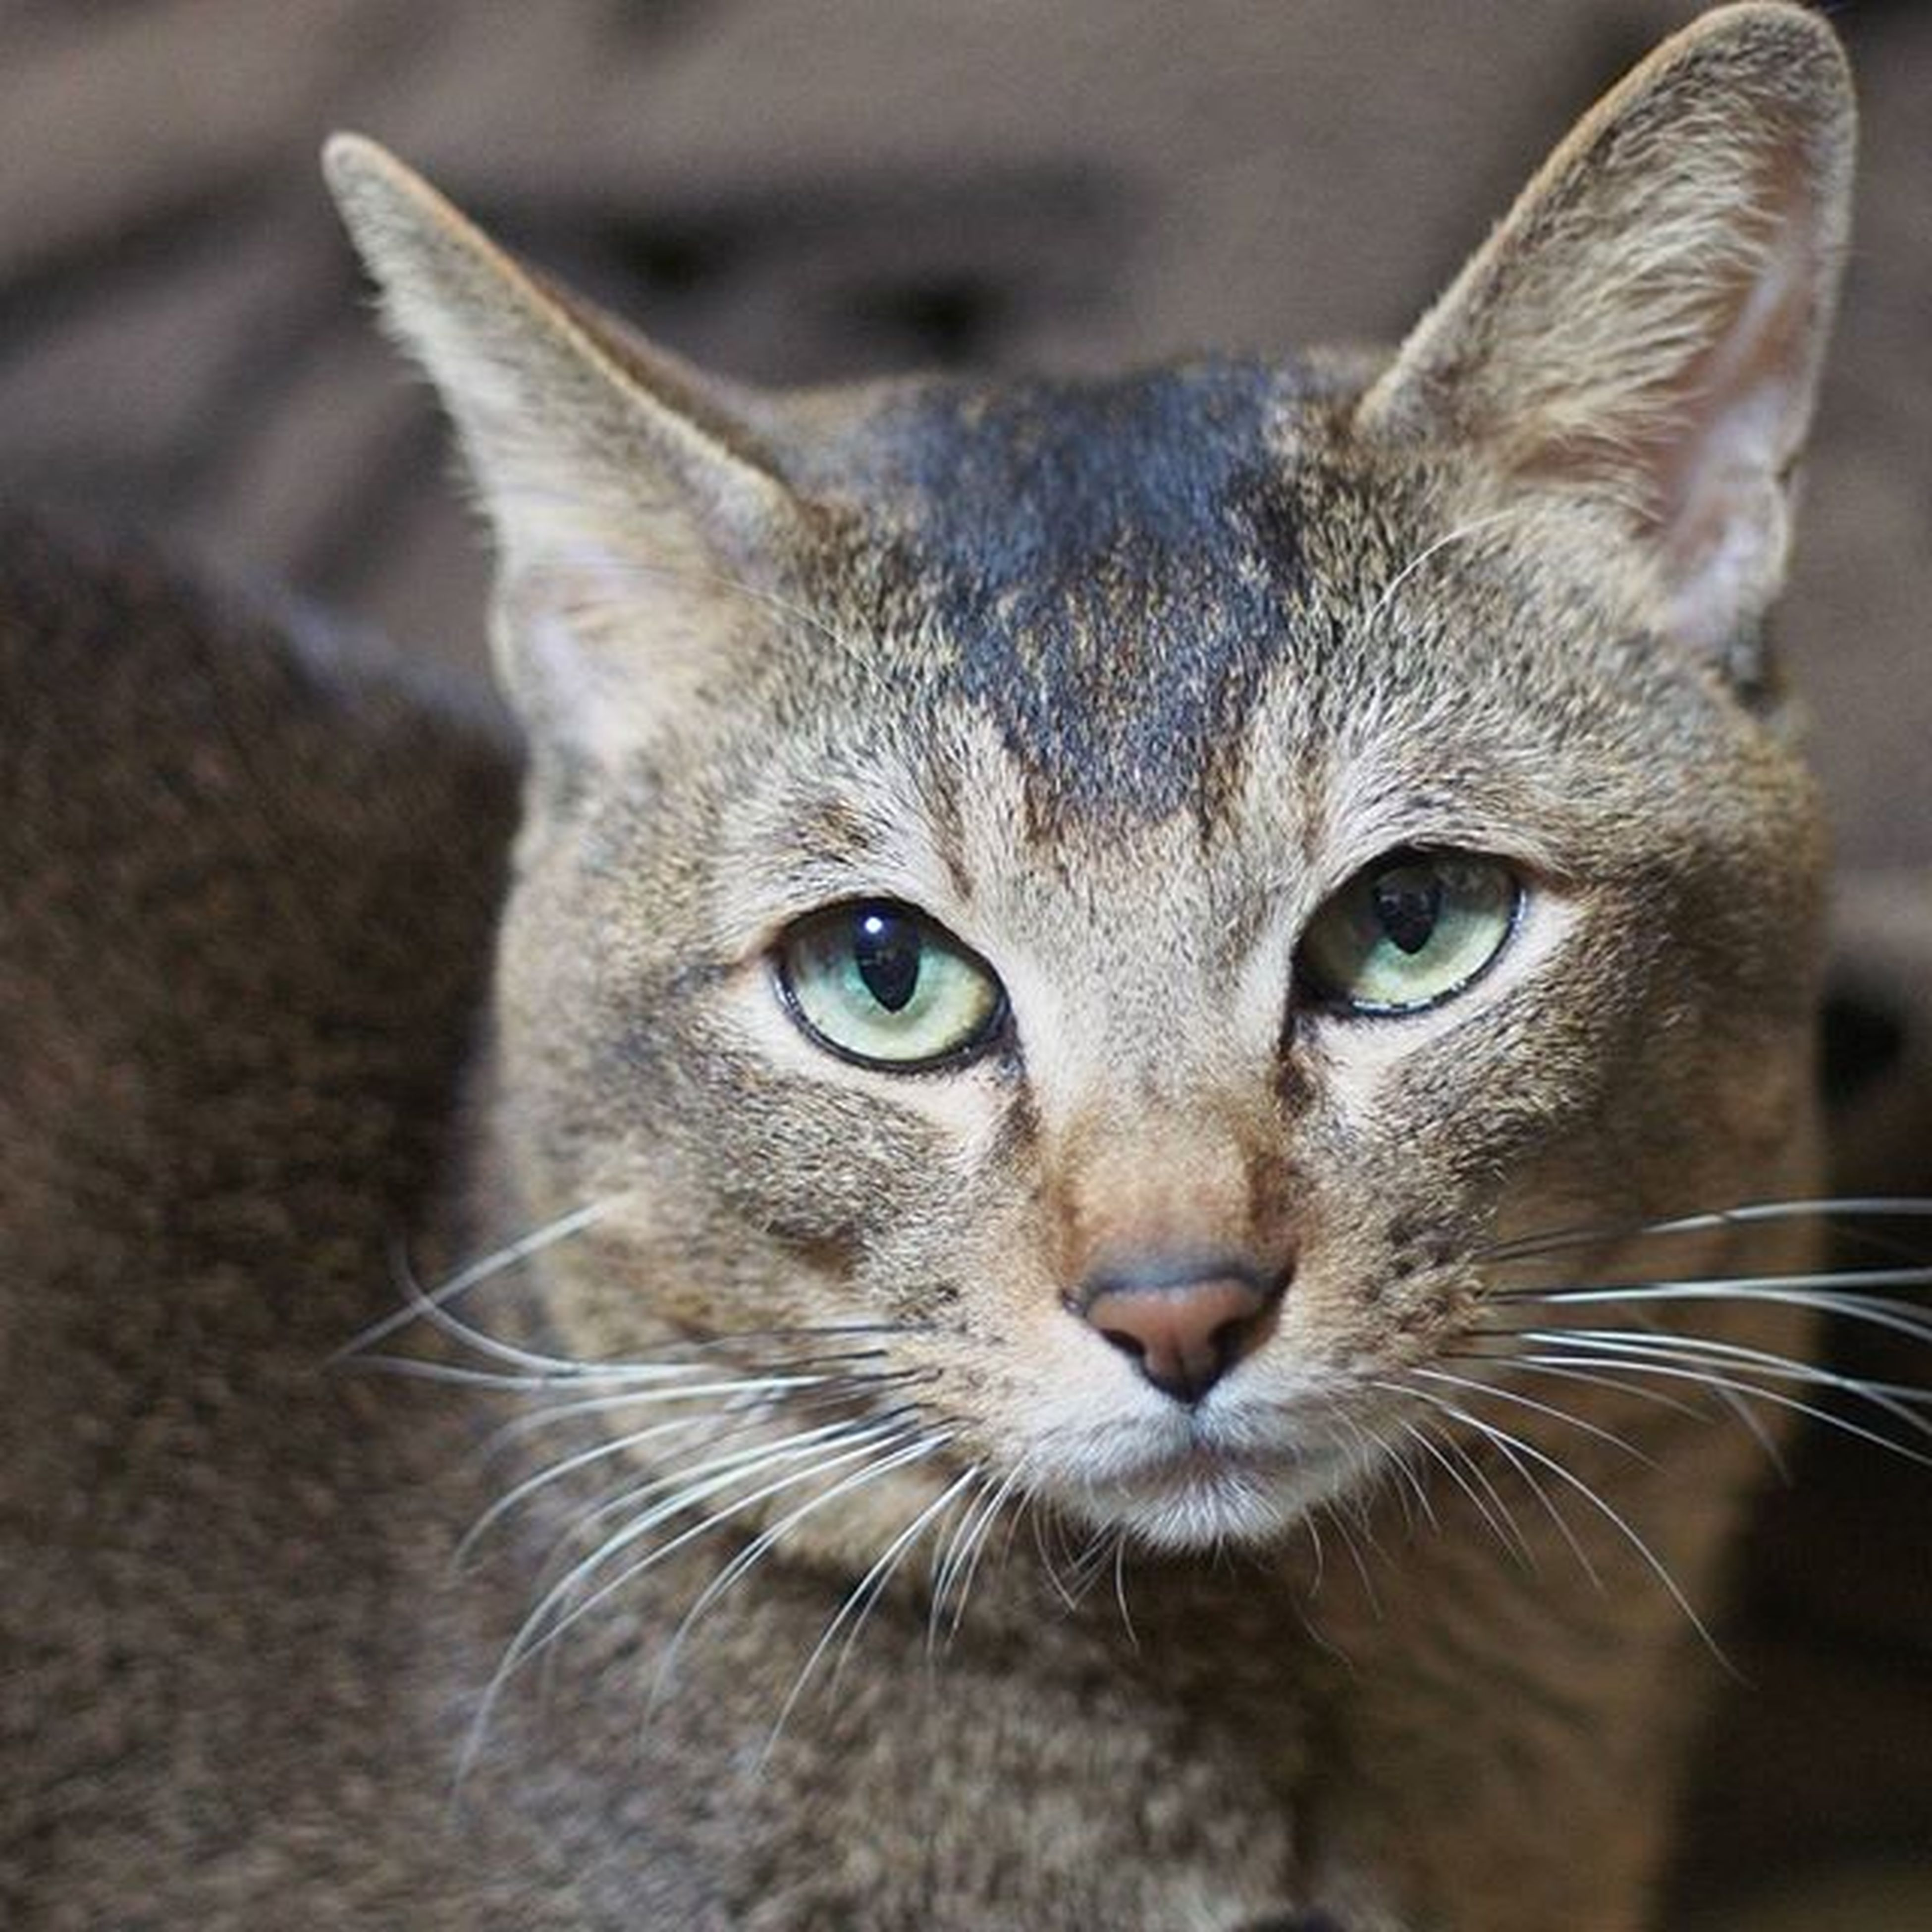 domestic cat, animal themes, one animal, cat, pets, domestic animals, whisker, portrait, feline, looking at camera, close-up, mammal, indoors, animal head, animal eye, focus on foreground, animal body part, alertness, staring, front view